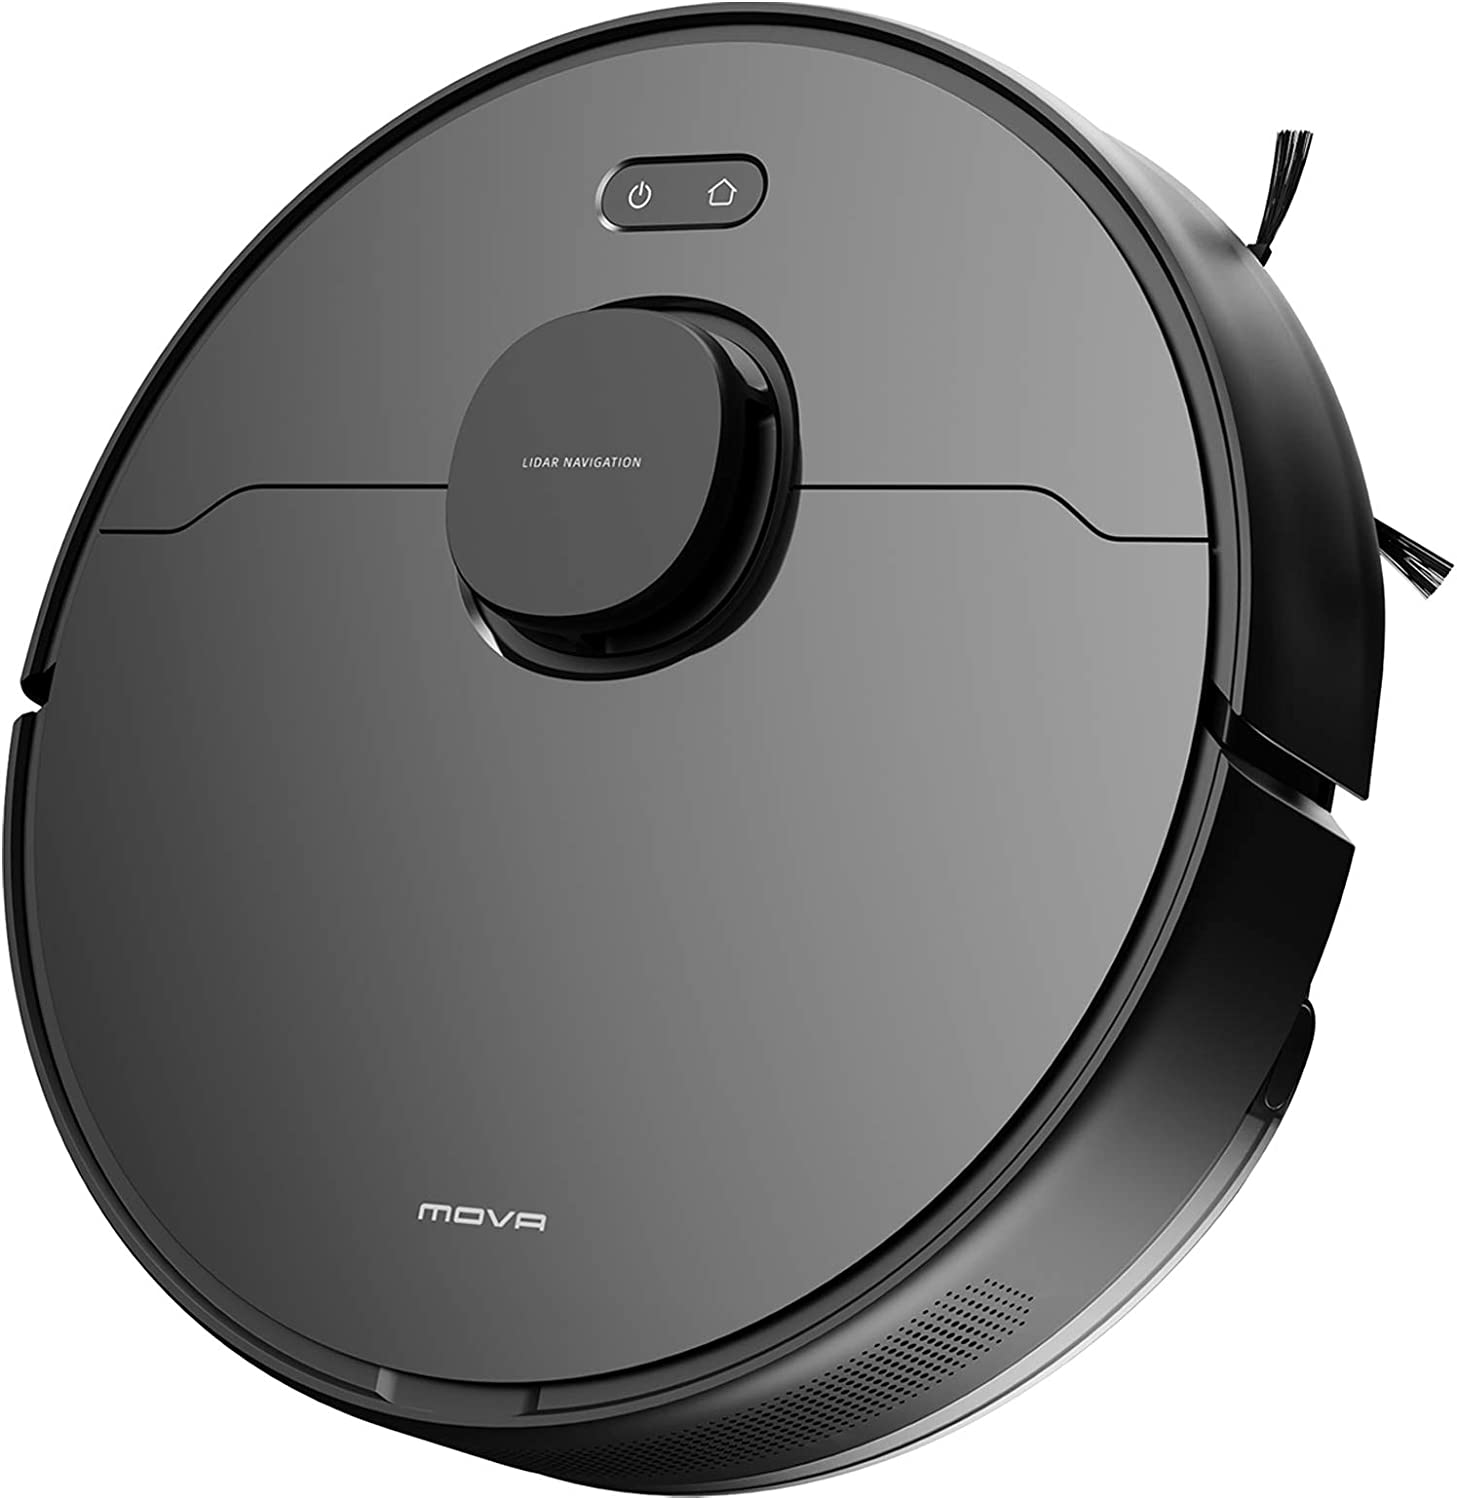 MOVA L600 Robot Vacuum and Mop, Lidar Navigation, Robot Cleaner with 4000Pa Strong Suction, Alexa, Wi-Fi, Smart Mapping, 5200mAh Large Battery, 2-in-1 Vacuum and Mop, for Pet Hair, Hard Floor, Carpet